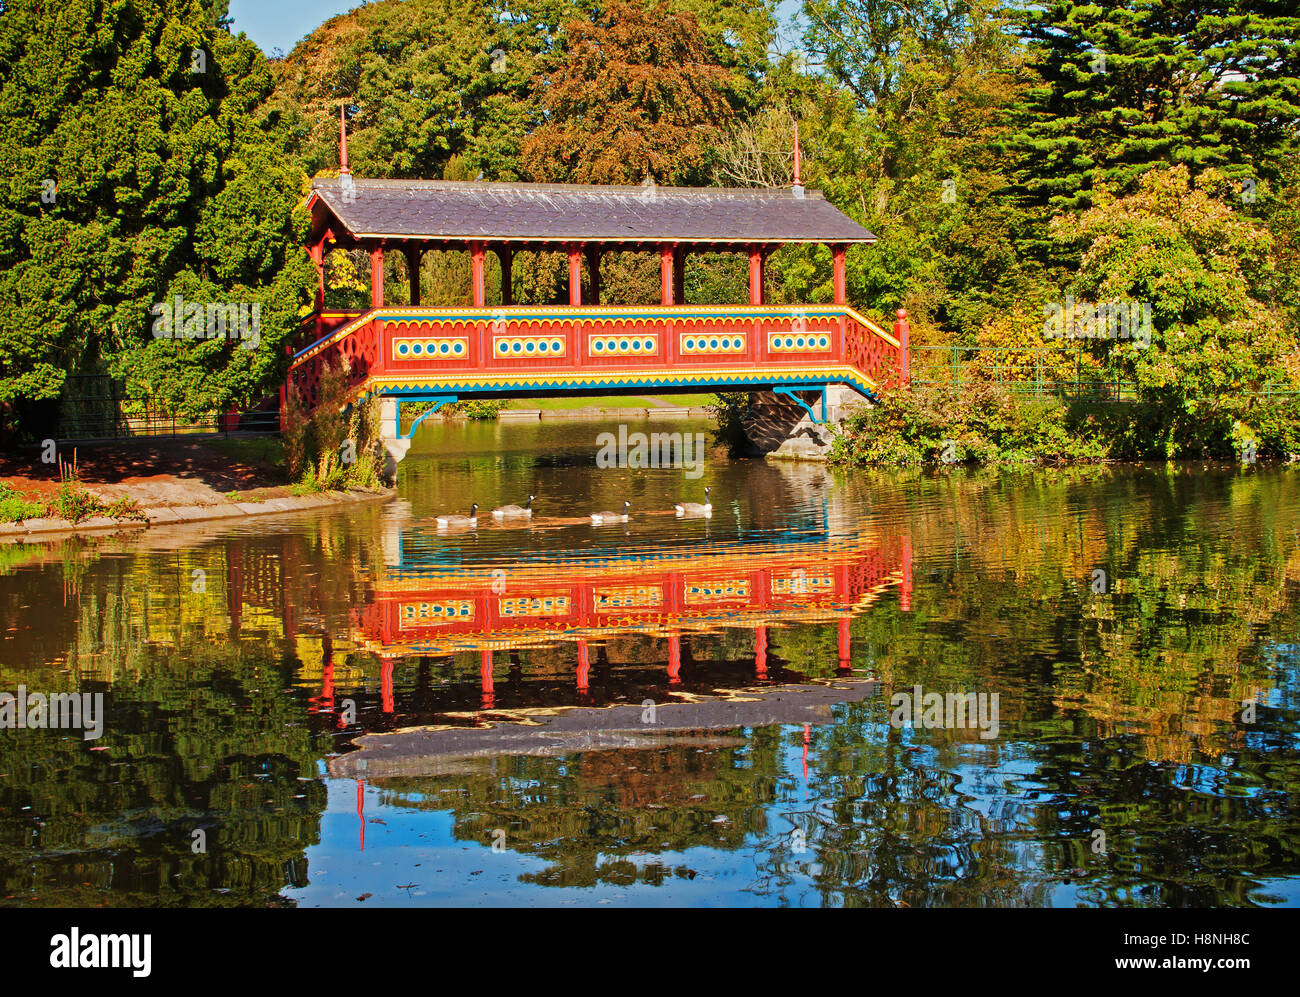 Reflections of the Swiss Bridge - Stock Image